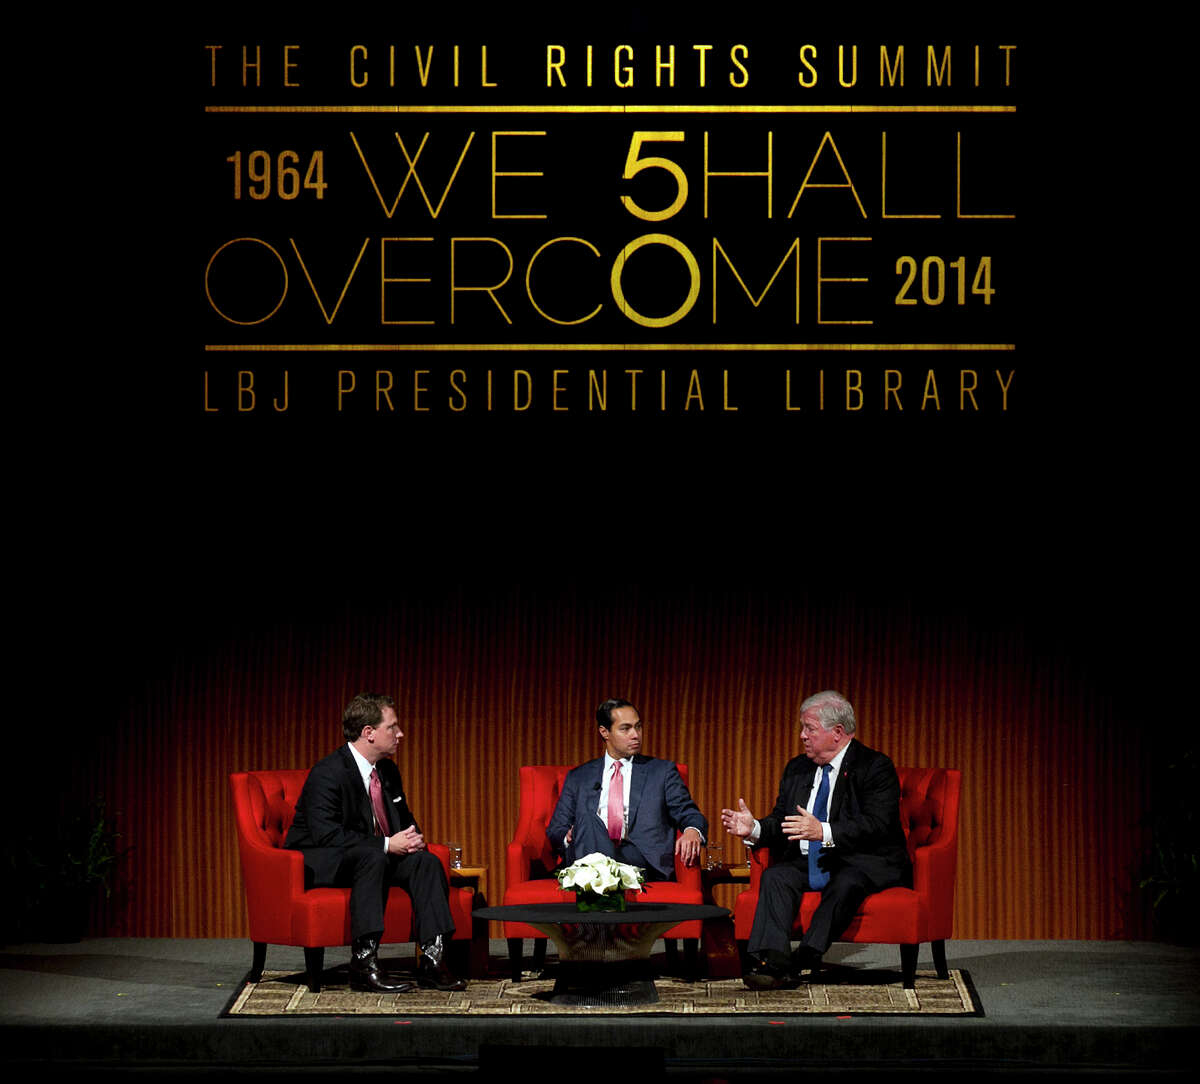 From left, Moderator Brian Sweany, Senior Executive Editor at Texas Monthly, left, and Mayor of San Antonio, Julian Castro, center, listens to former Governor of Mississippi, Haley Barbour, during the 'Pathway to the American Dream: Immigration Policy in the 21st Century' panel at the Civil Rights Summit at the LBJ Presidential Library on the University of Texas campus in Austin, Tx., on Tuesday, April 8, 2014.